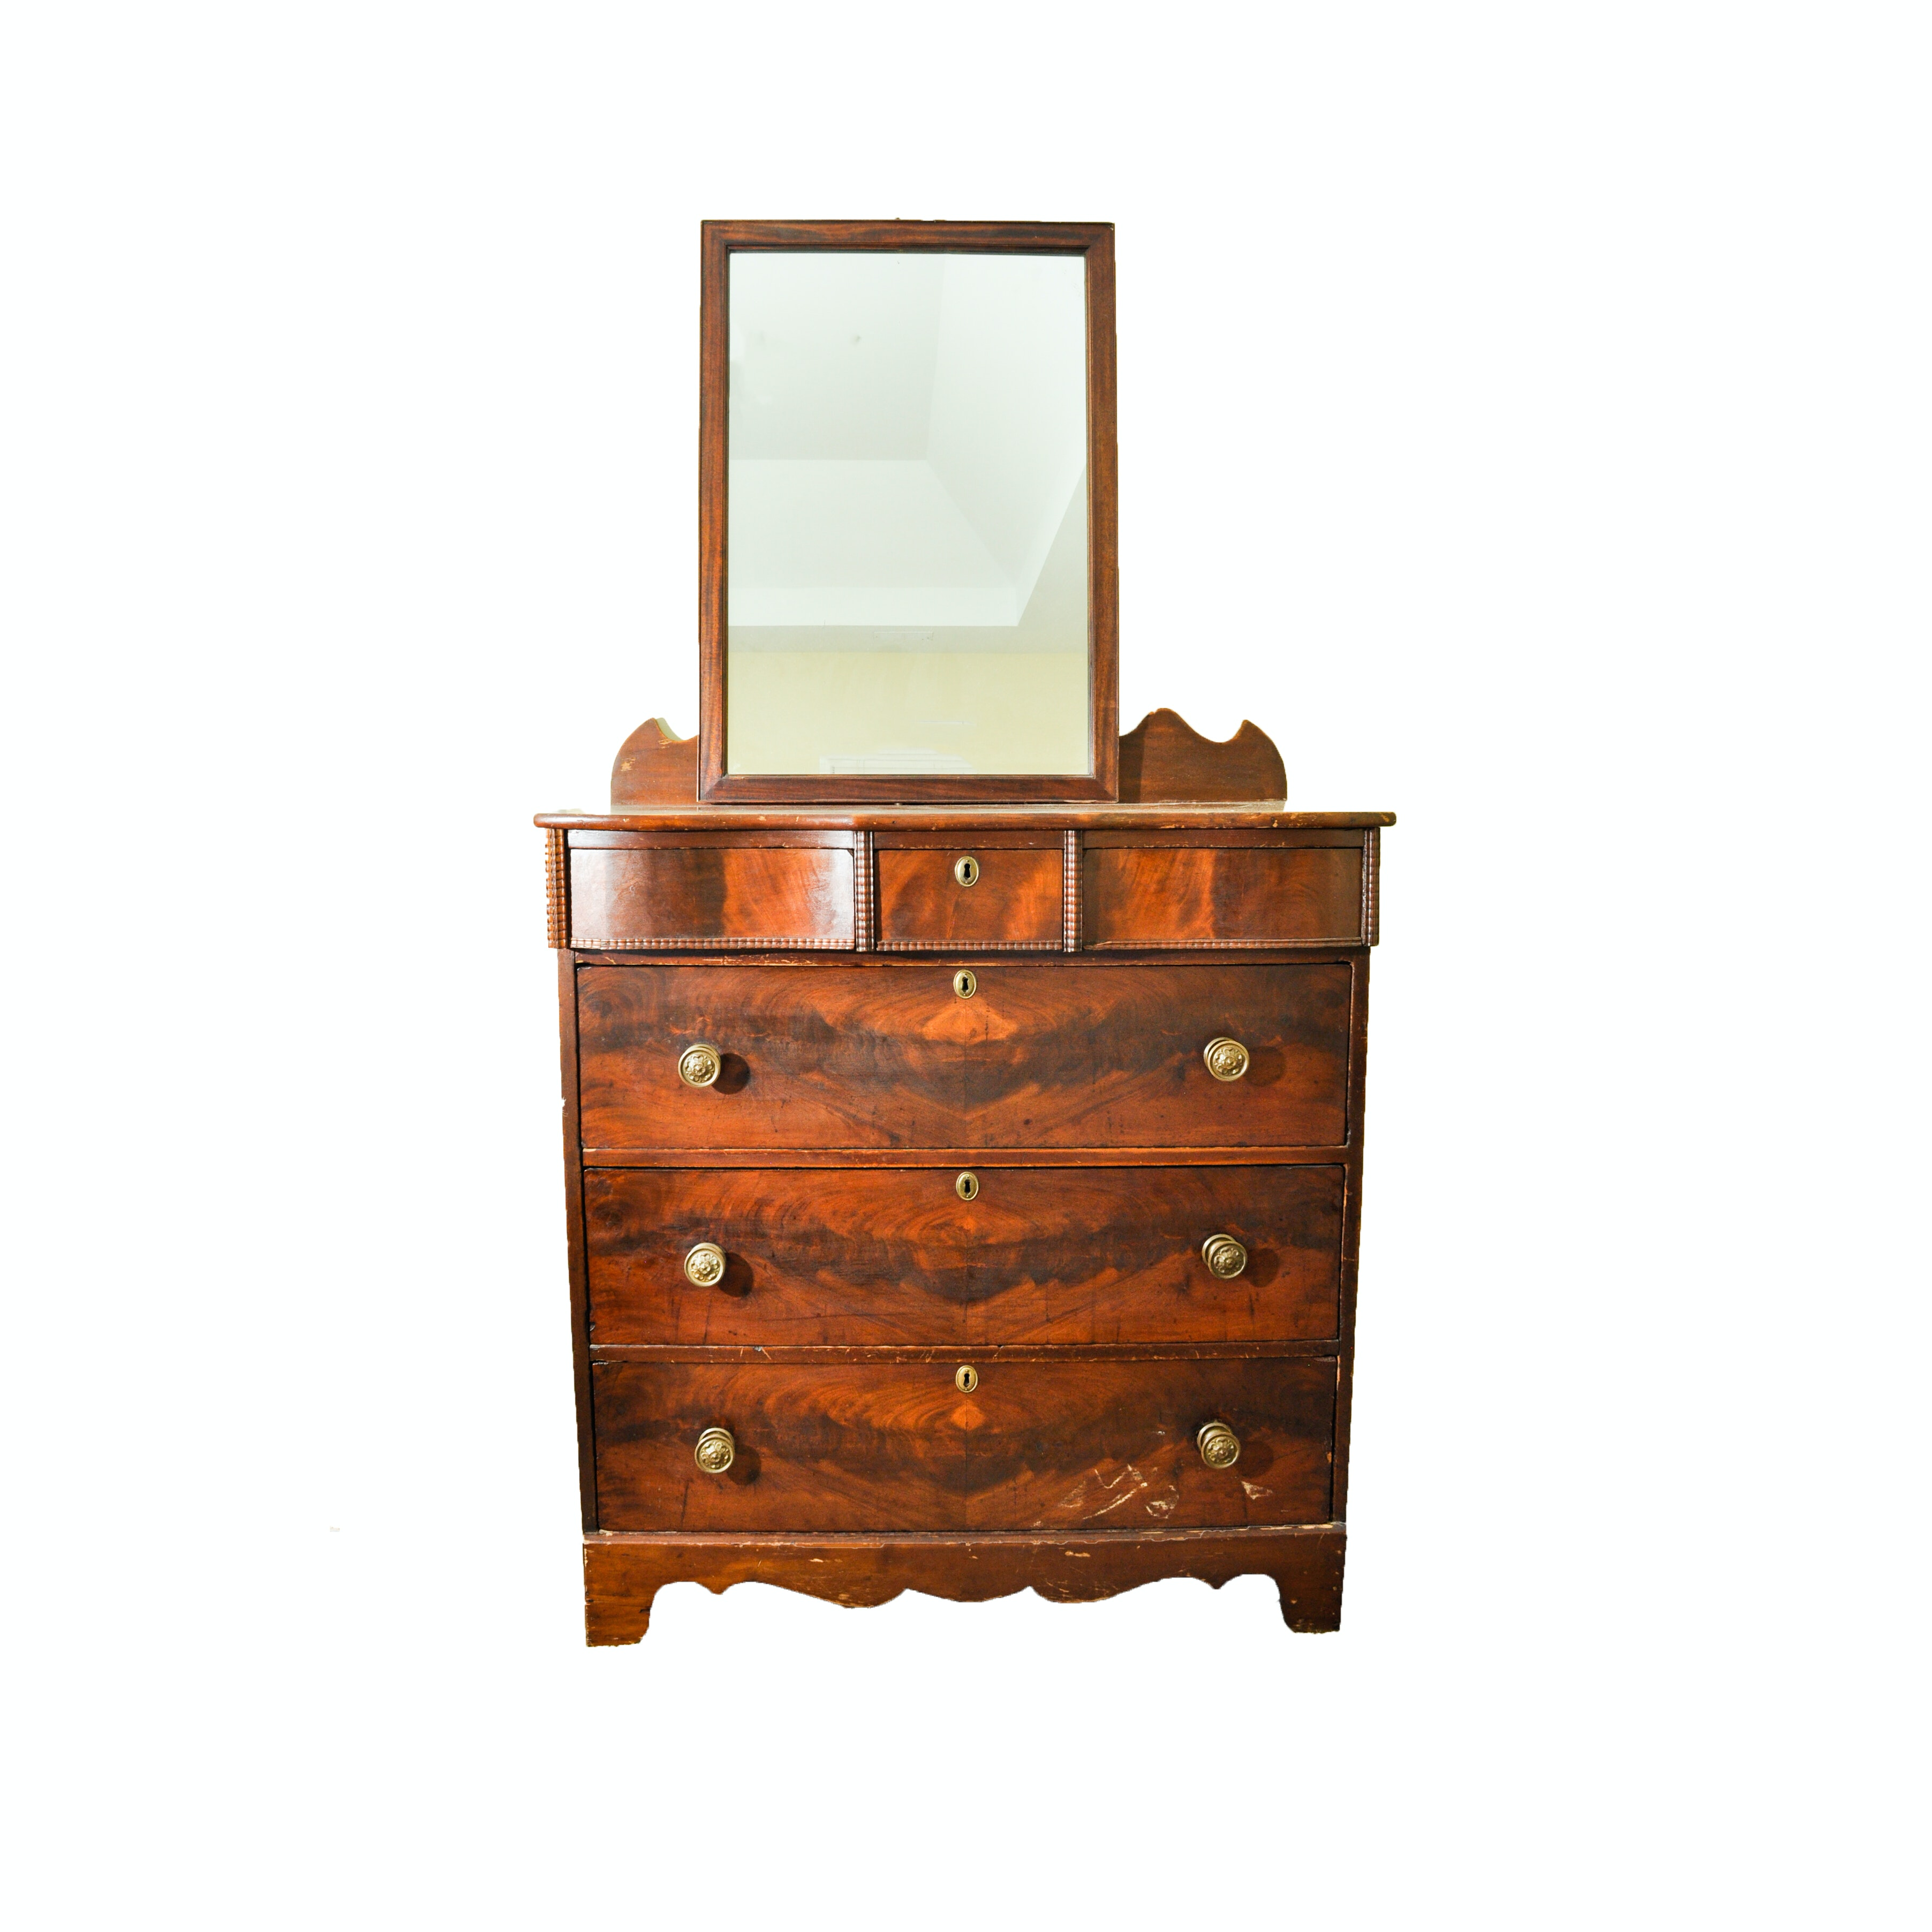 Empire / Early Victorian Chest of Drawers with Later Mirror